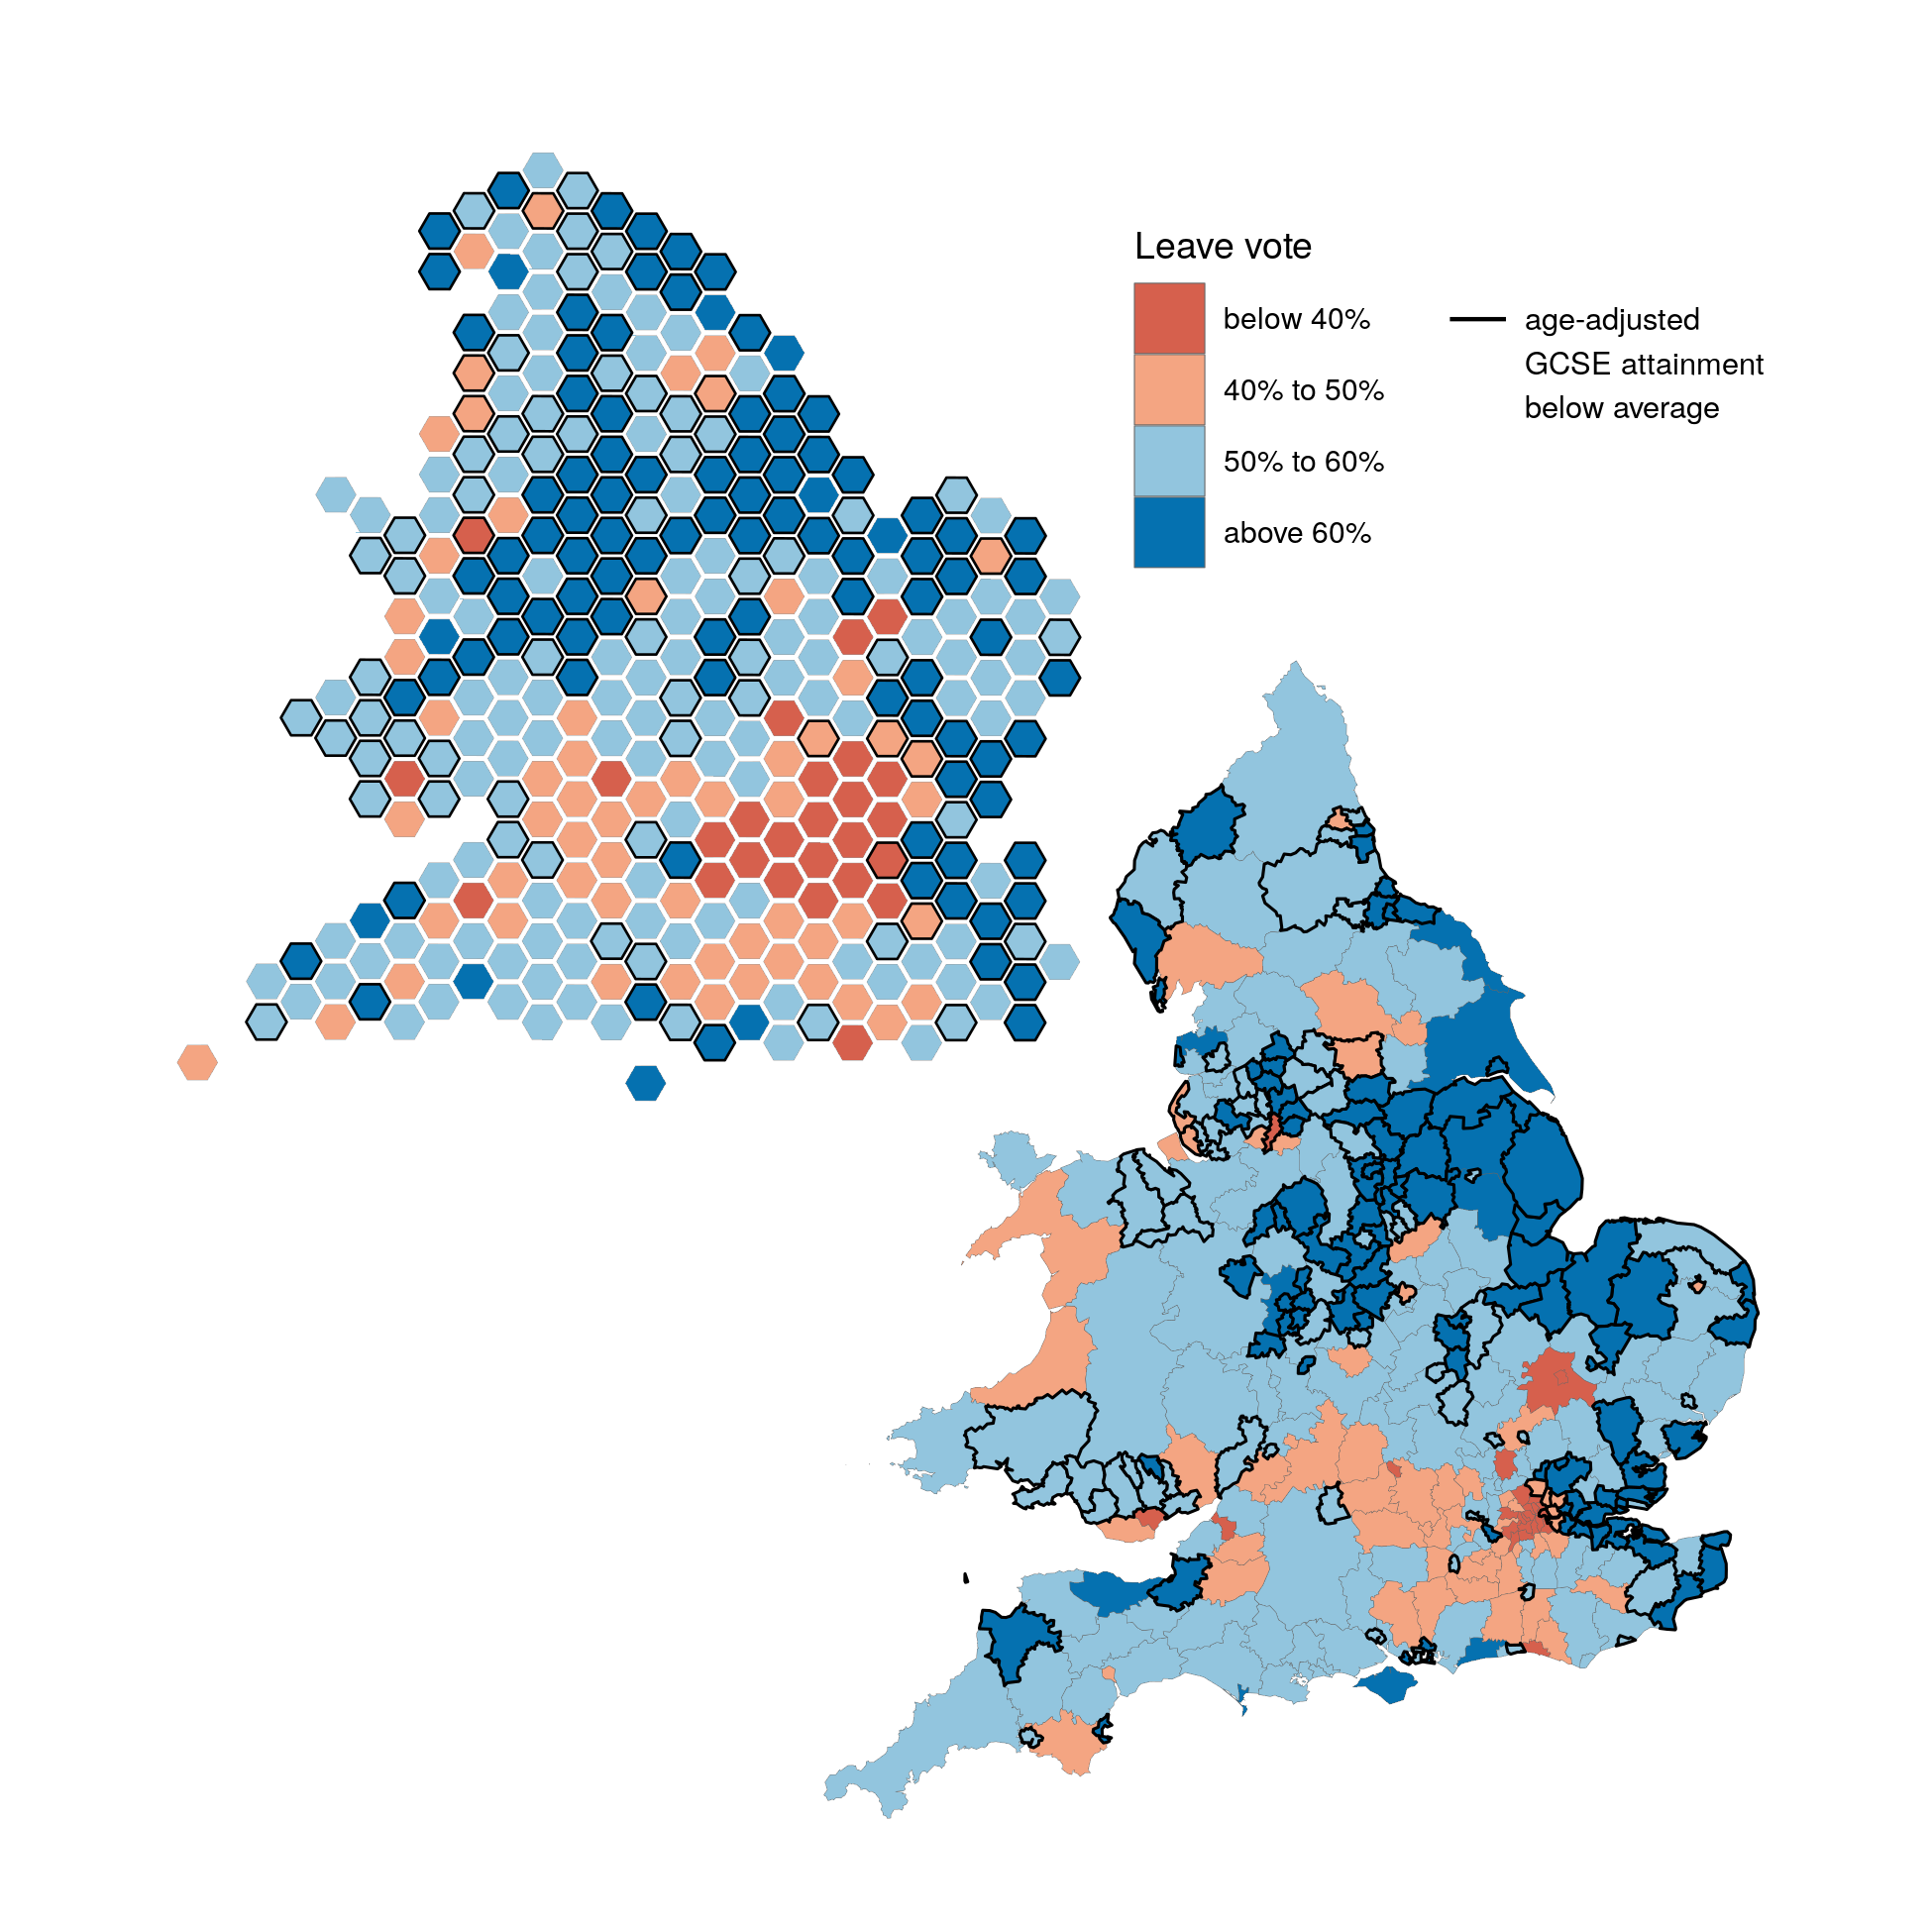 Map of Leave votes shares and age-adjusted educational attainment